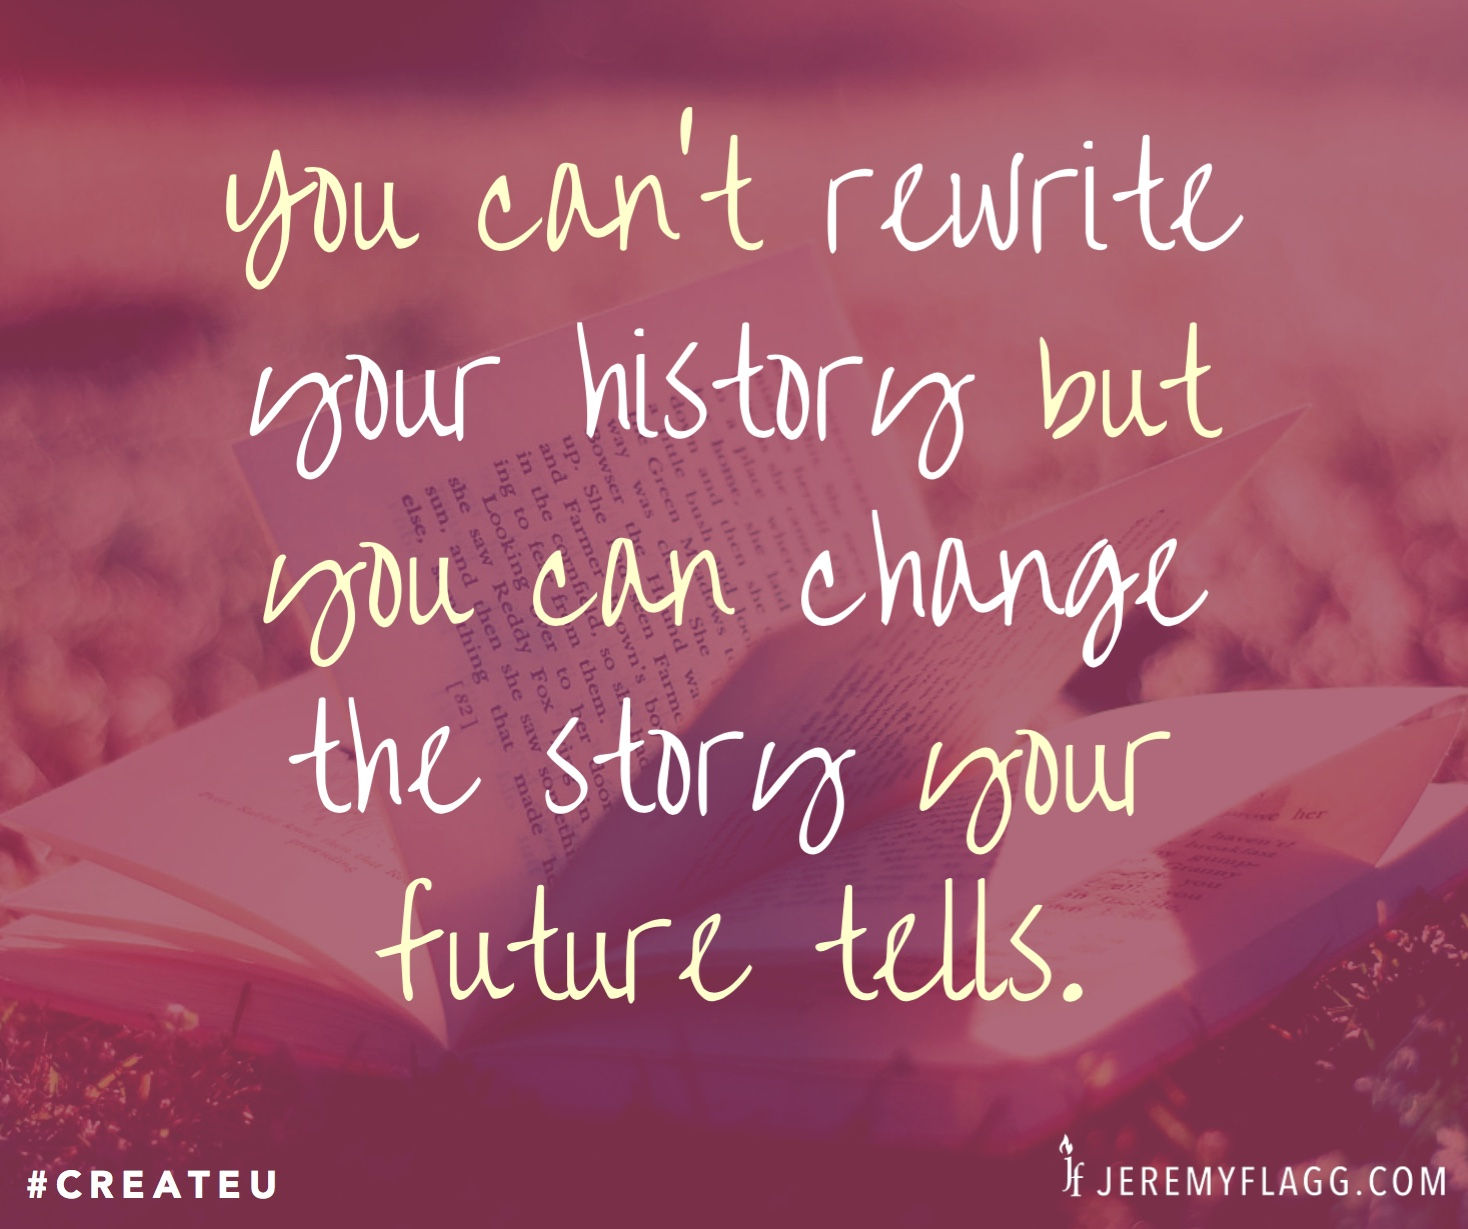 Rewrite-your-history-change-the-story-Jeremy-Flagg-quote-FB